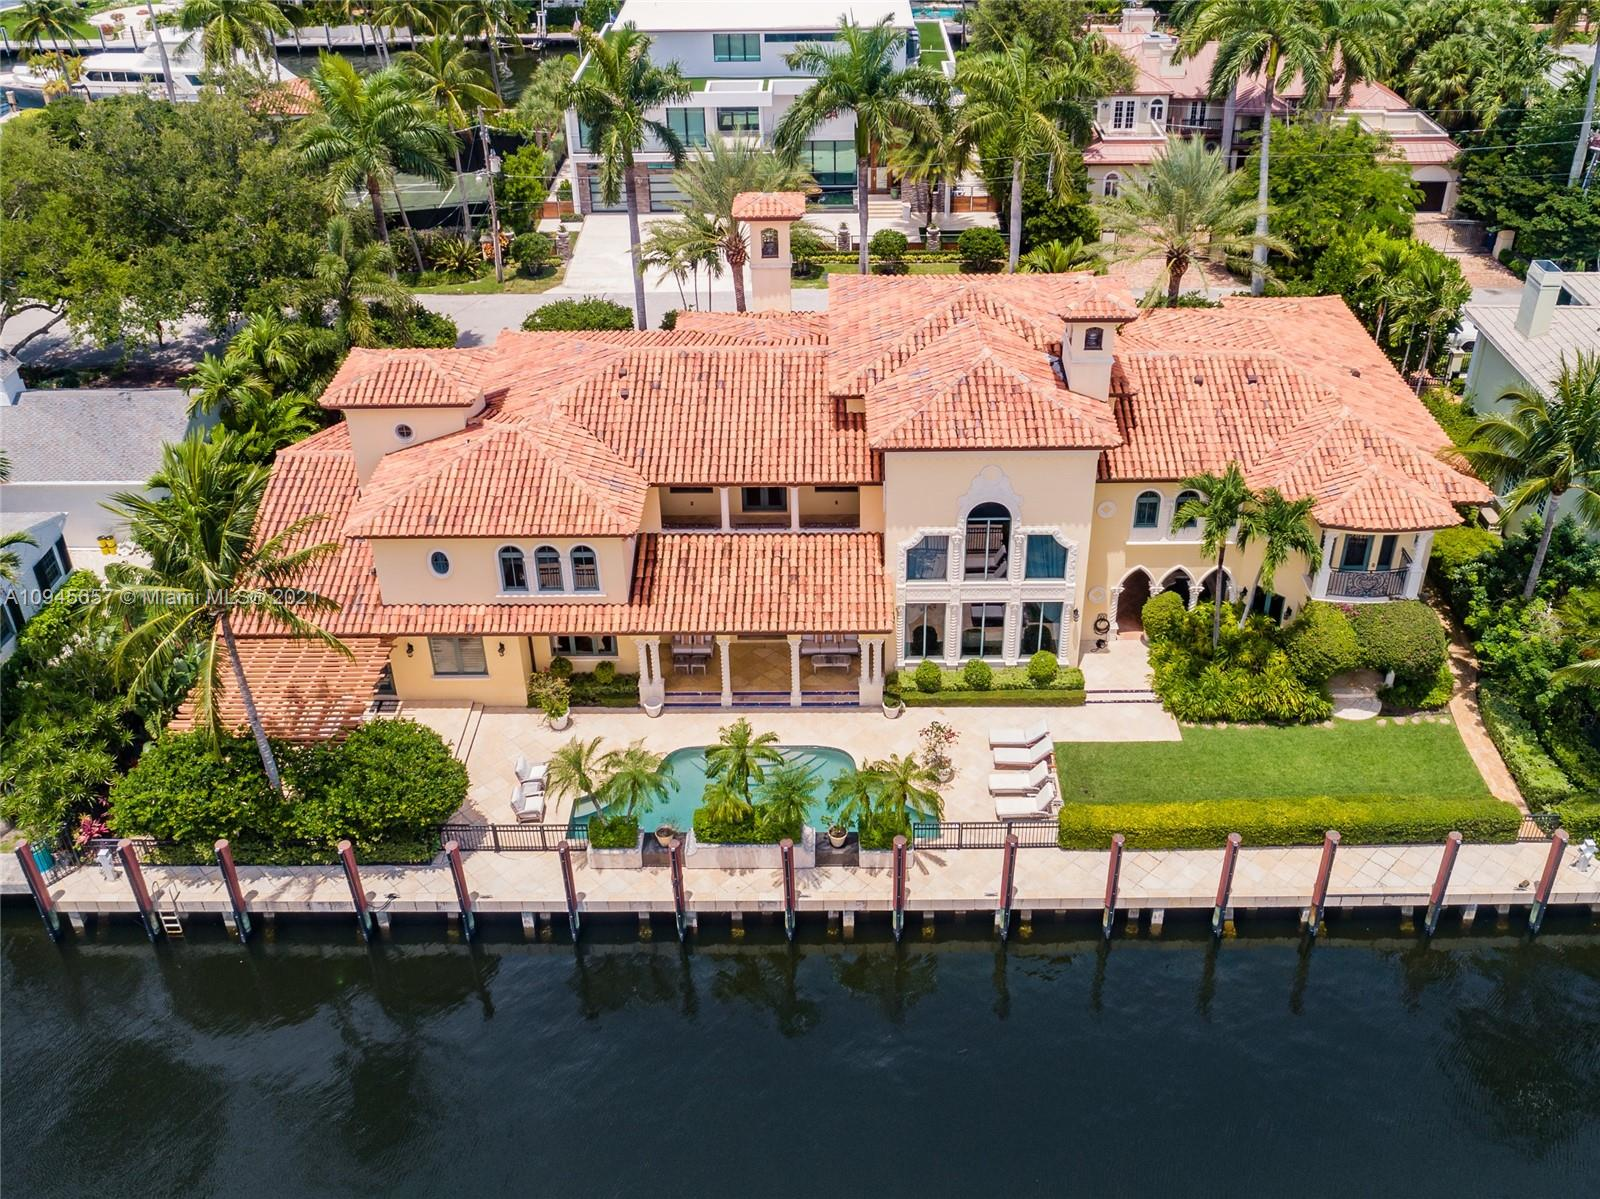 Stunning custom trophy estate located on one of the finest South Las Olas Isles & close to the point. This substantial & luxurious deep water residence has 150 ft of waterfront with dockage set-up to accommodate upto 130 ft yacht with easy access to the Port. Incredibly well built & detailed with amazing craftmanship - originally custom builder's own residence! Fabulous living & family room, Chef's kitchen, bar, wine cellar & Movie Theater room with more entertaining areas. Potential for substantial VIP Guest Suite & Staff/Captain Quarters on ground floor. The rooms are well proportioned throughout including Bedroom Suites & an amazing expansive Master Wing with two separate bathrooms. Many rooms open to covered loggias & balconies for outdoor enjoyment. Move in ready!